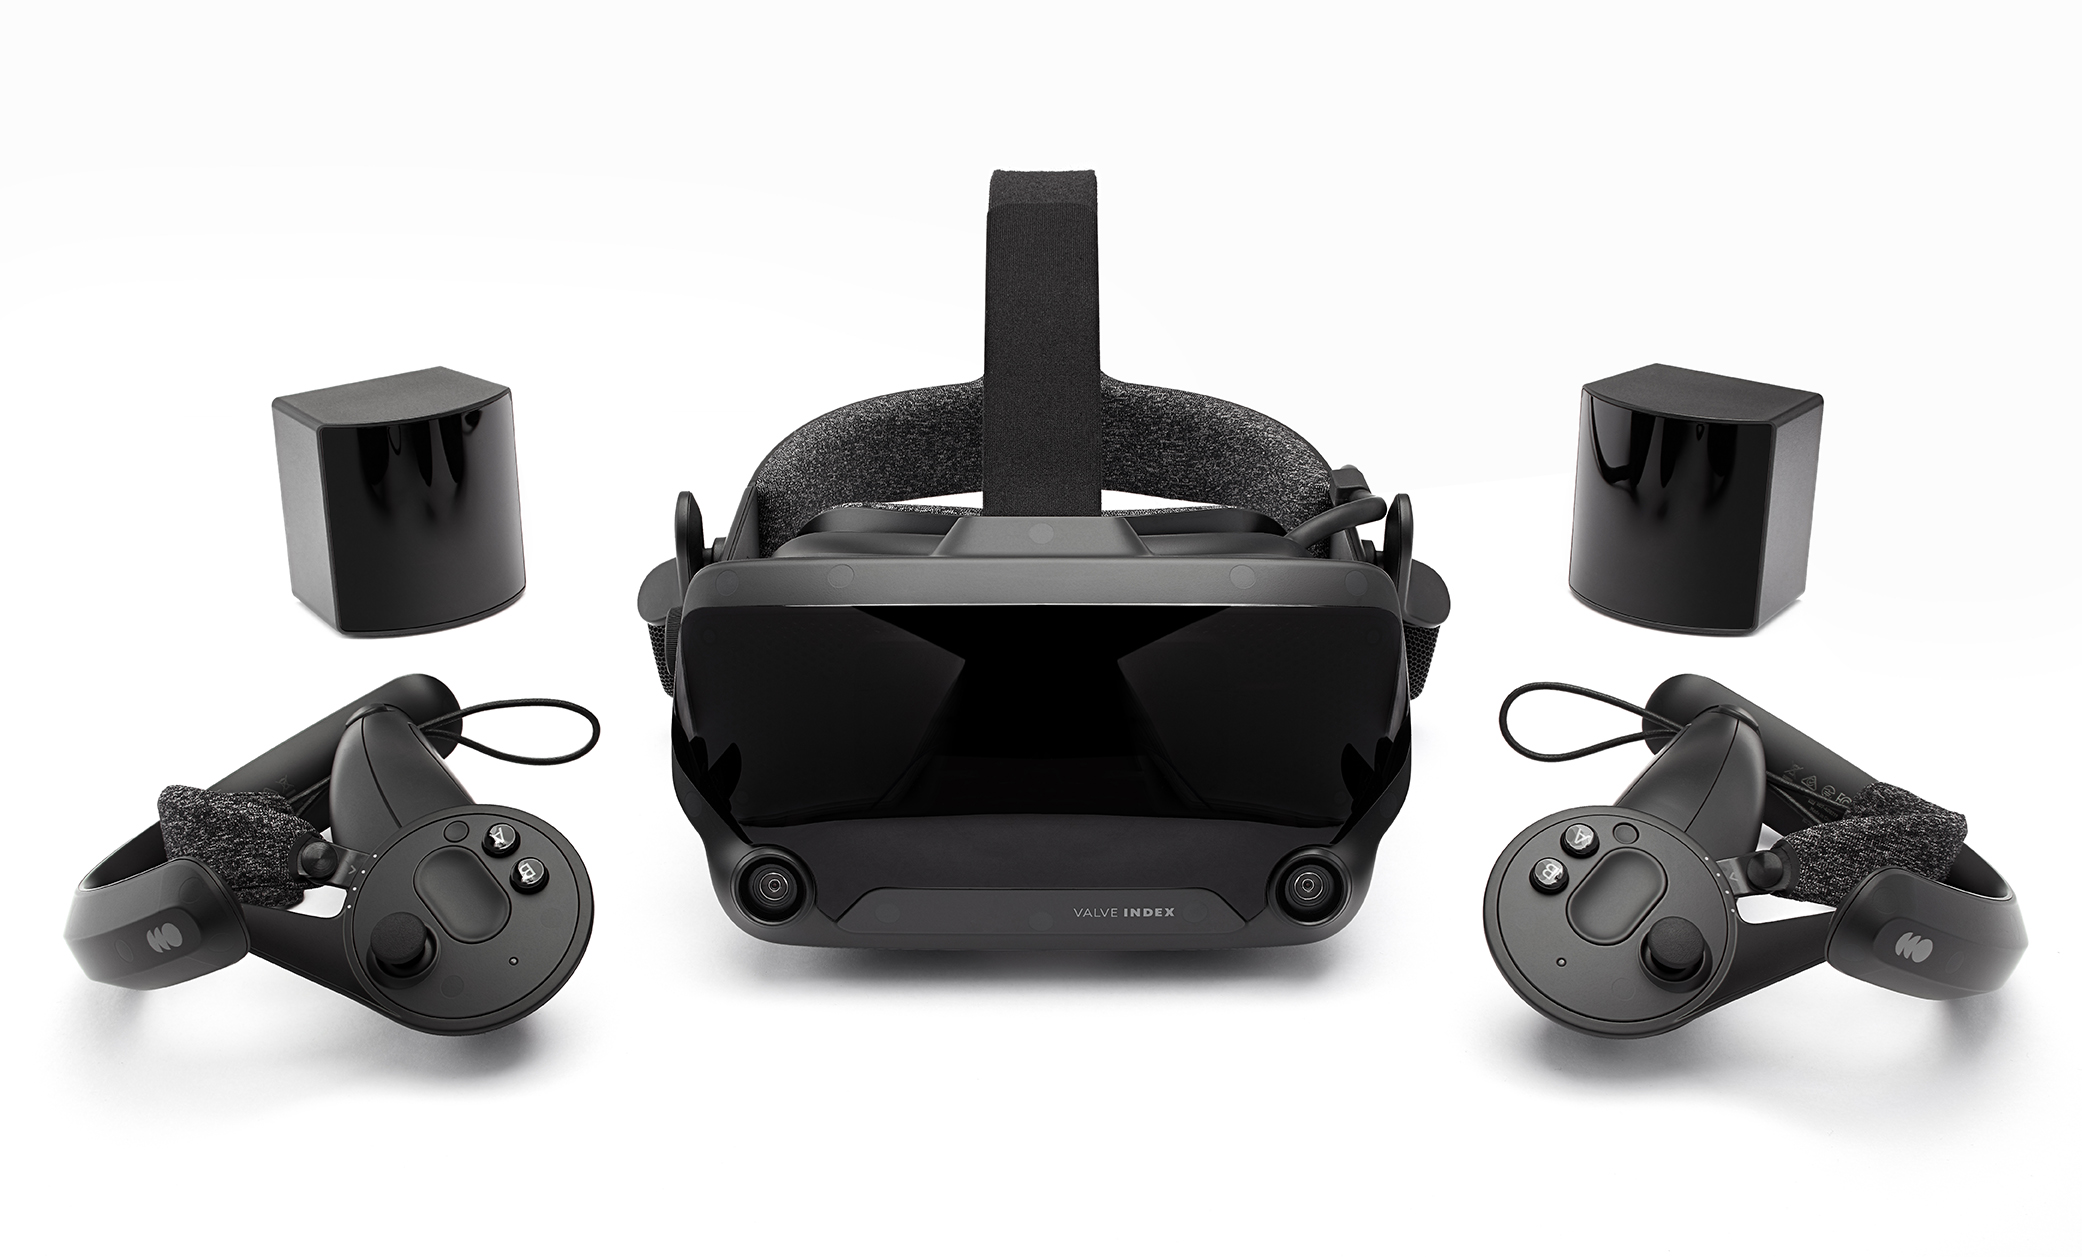 87 Sensors On Valve's VR Index Controllers Allow Players To Interact With A Real-Life Environment